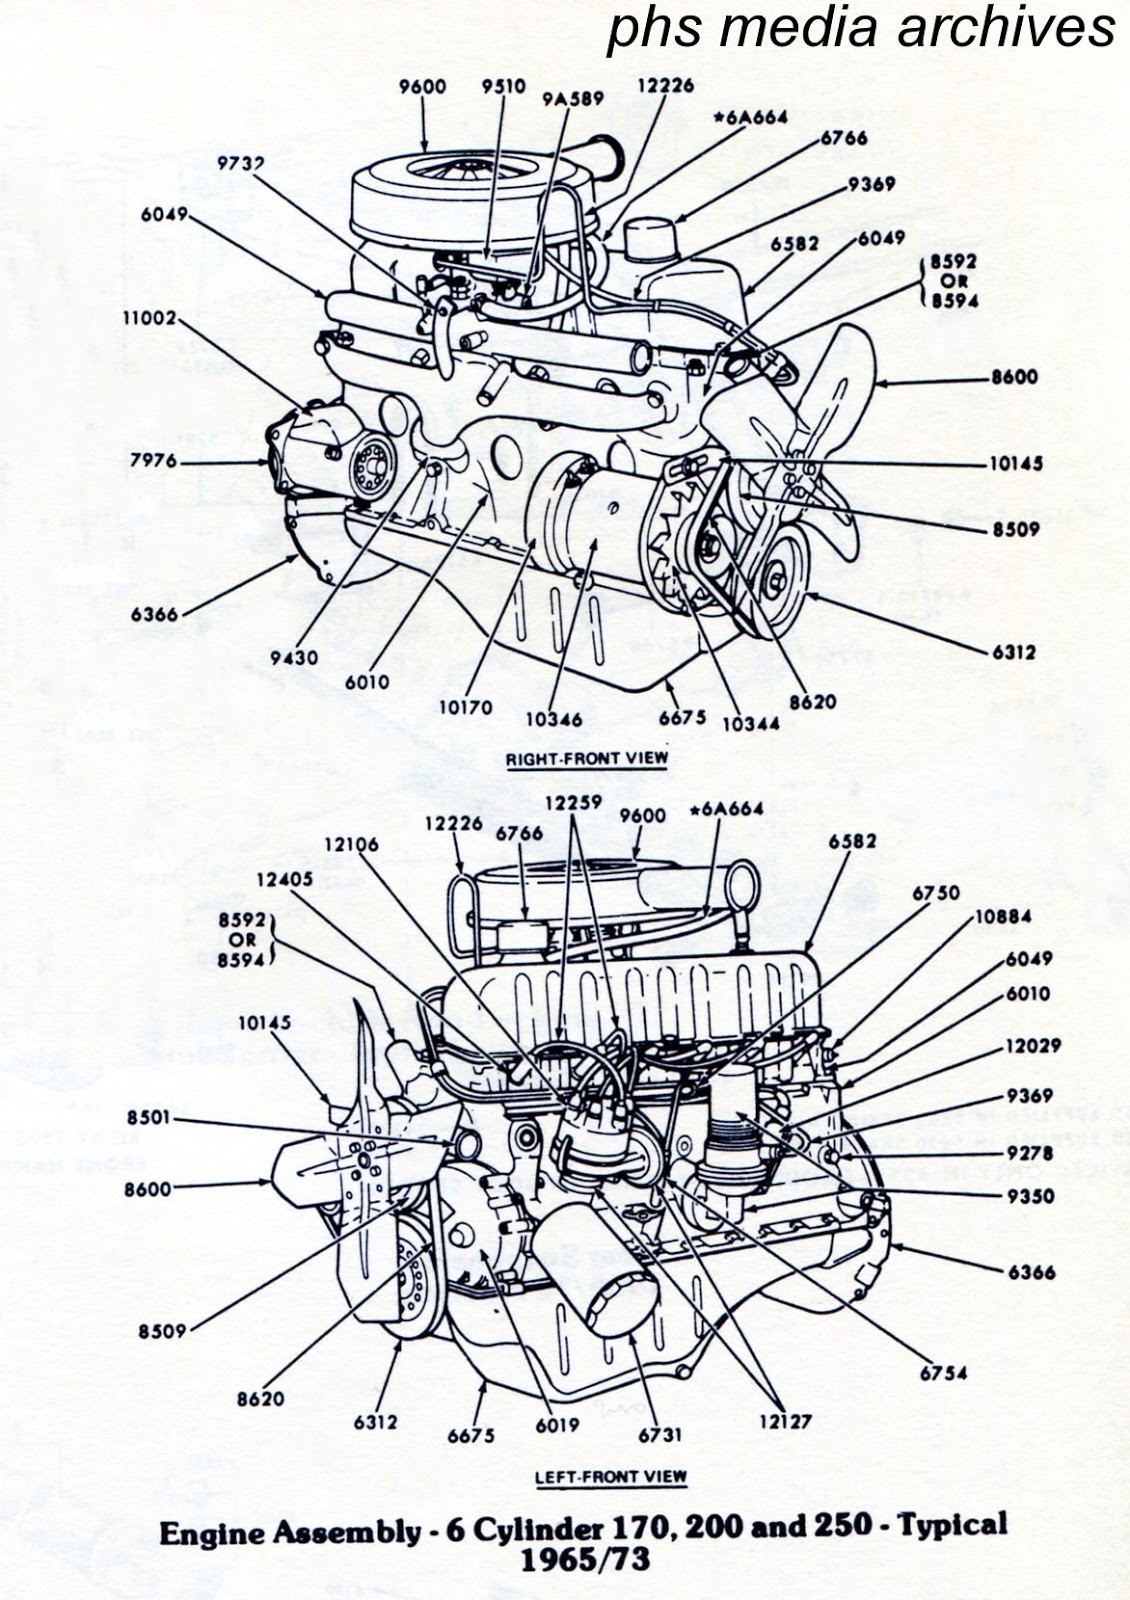 the straight six engine changed in displacement over the years to become a 250 by 1971  [ 1130 x 1600 Pixel ]